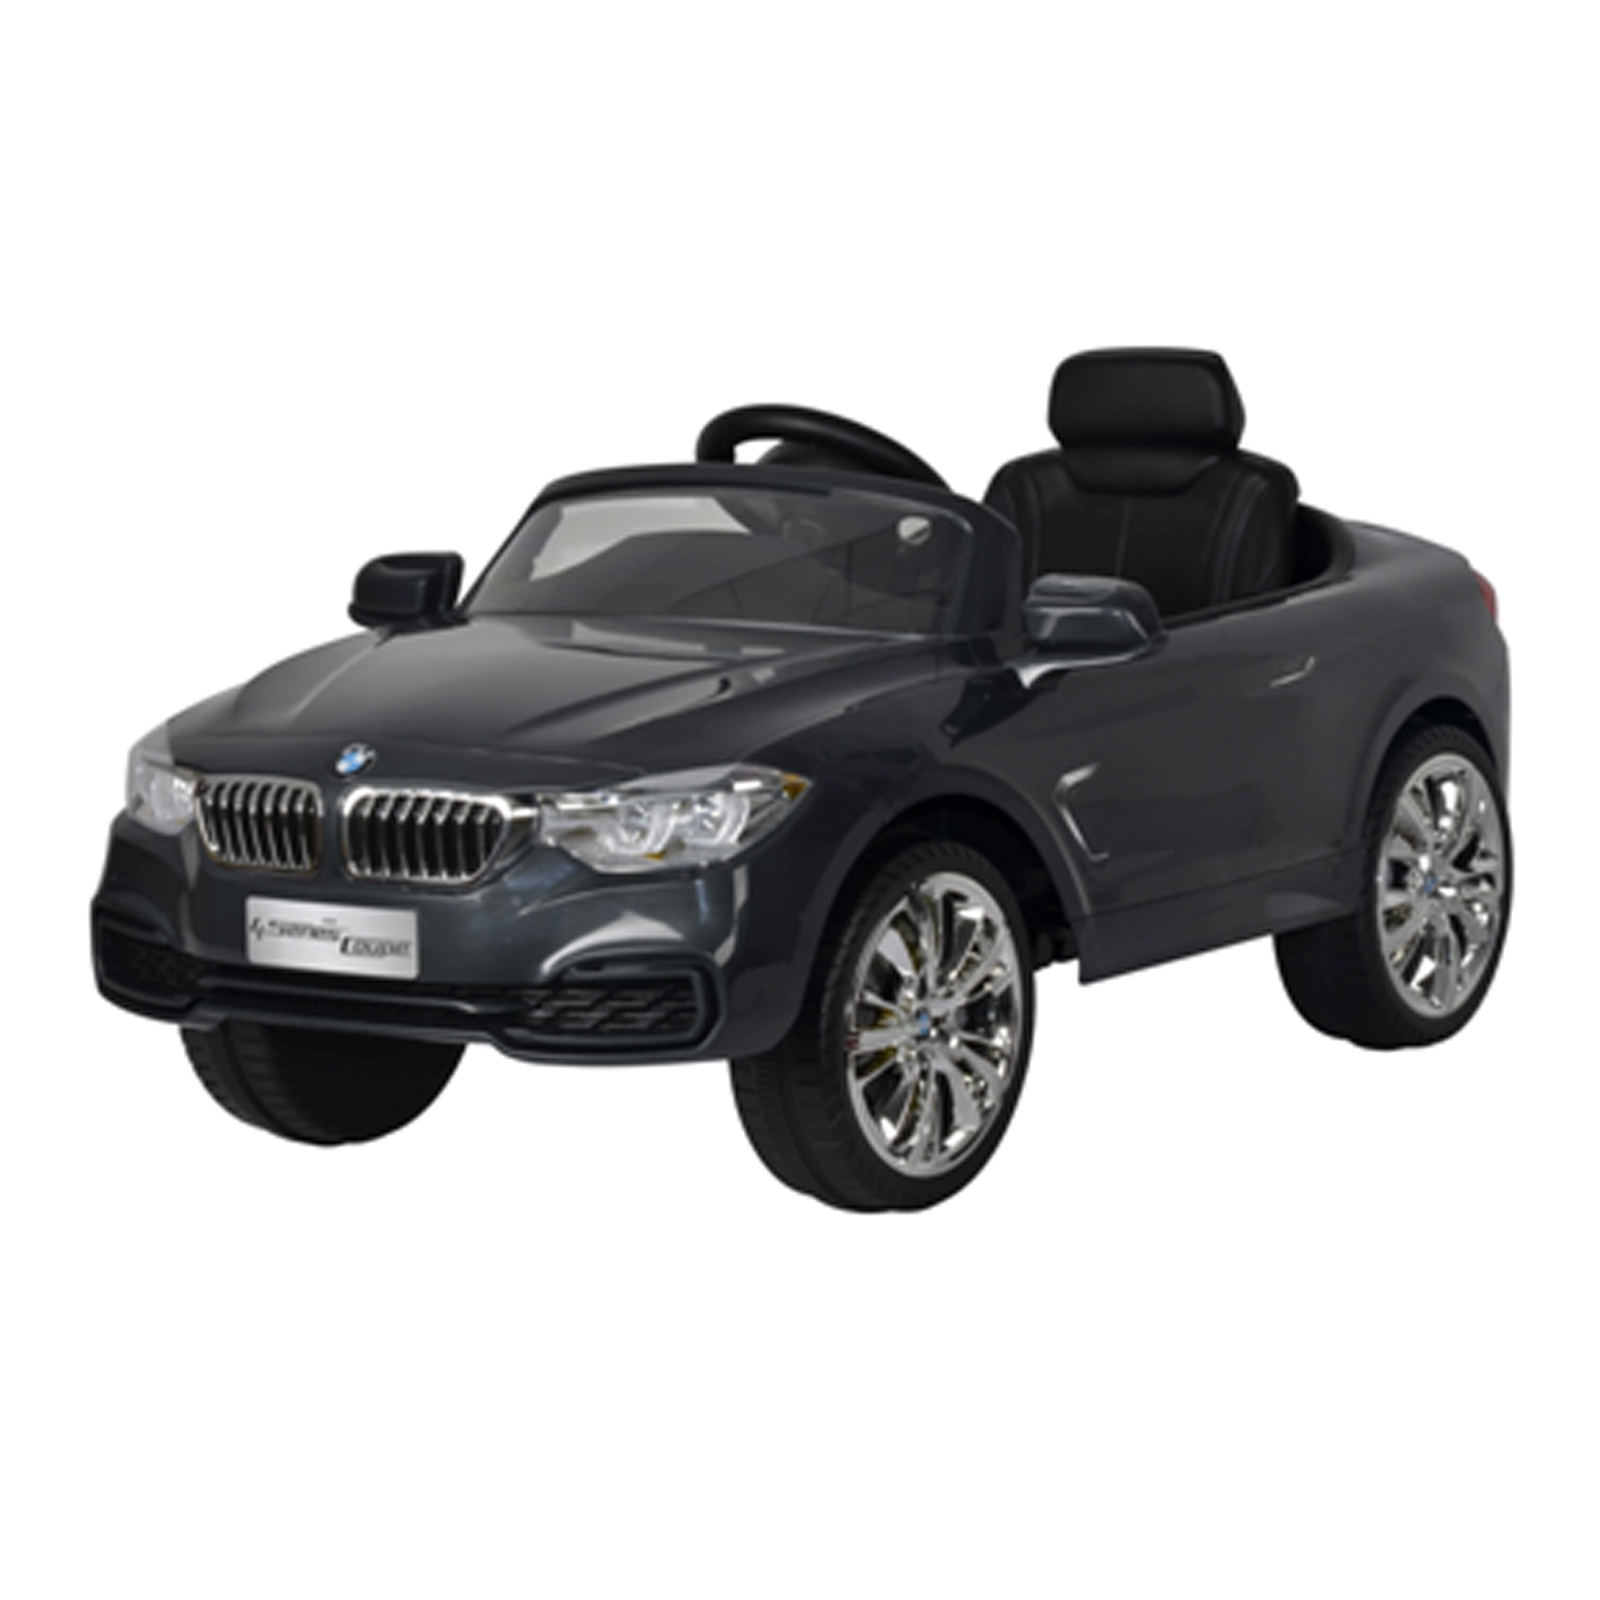 Battery Powered Cars Beautiful Bmw 4 Series 12v Kids Battery Powered Ride On Car 3 Colors – Kid